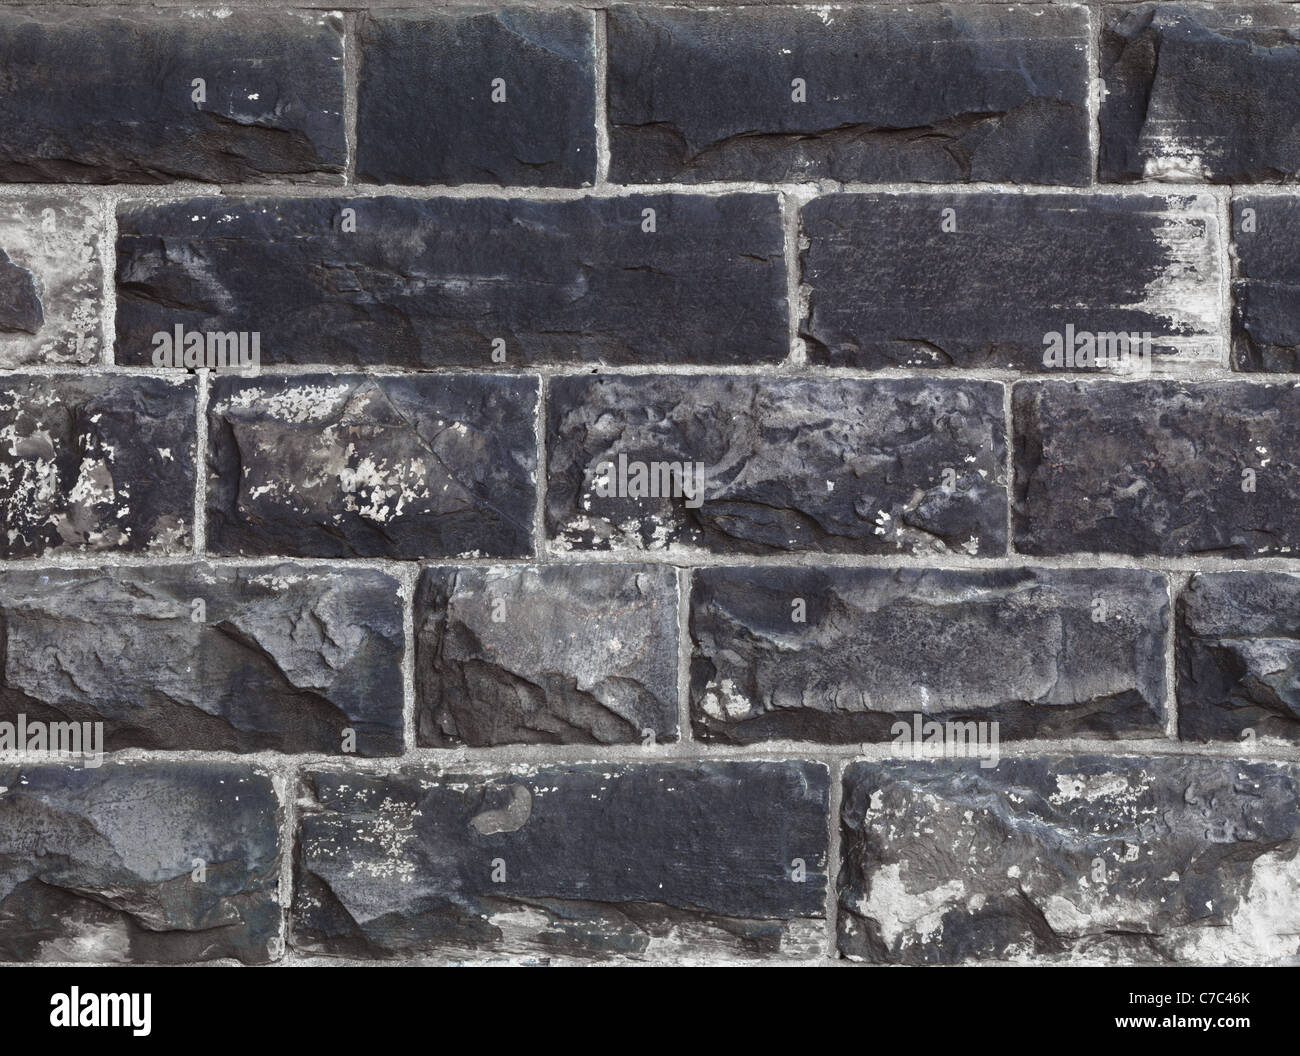 ff1e5567cedf94 Old gothic architecture style stone wall texture background. High quality  high resolution photo.